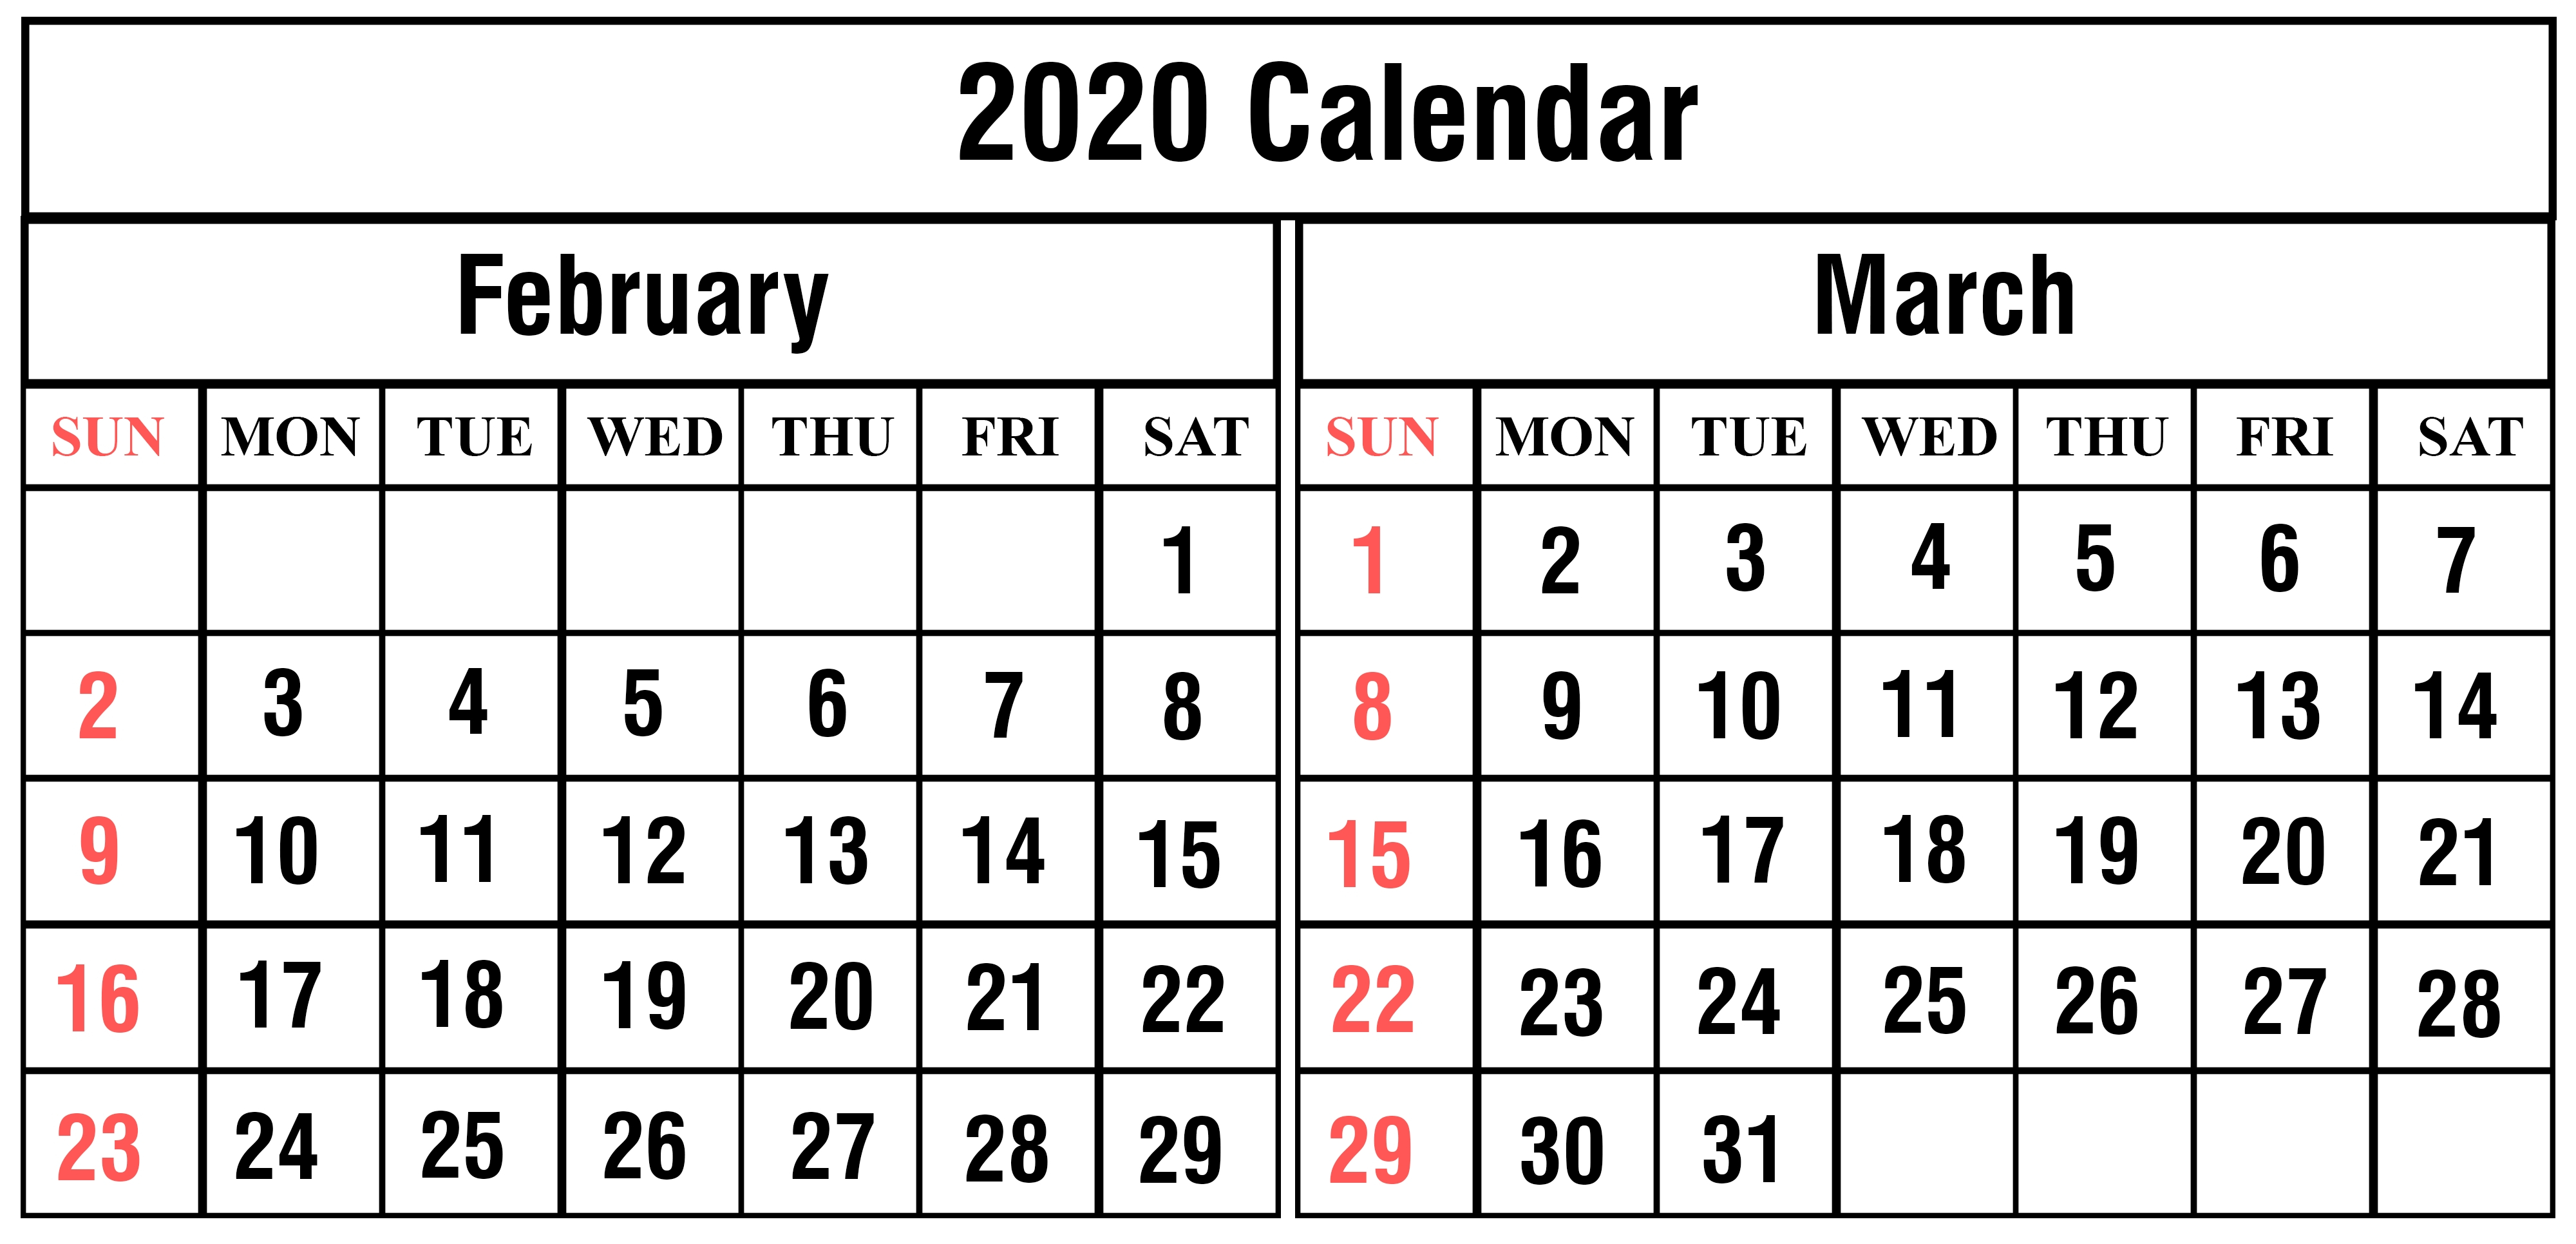 Calendar Of February And March 2020 | Calendar Template with regard to February And March 2020